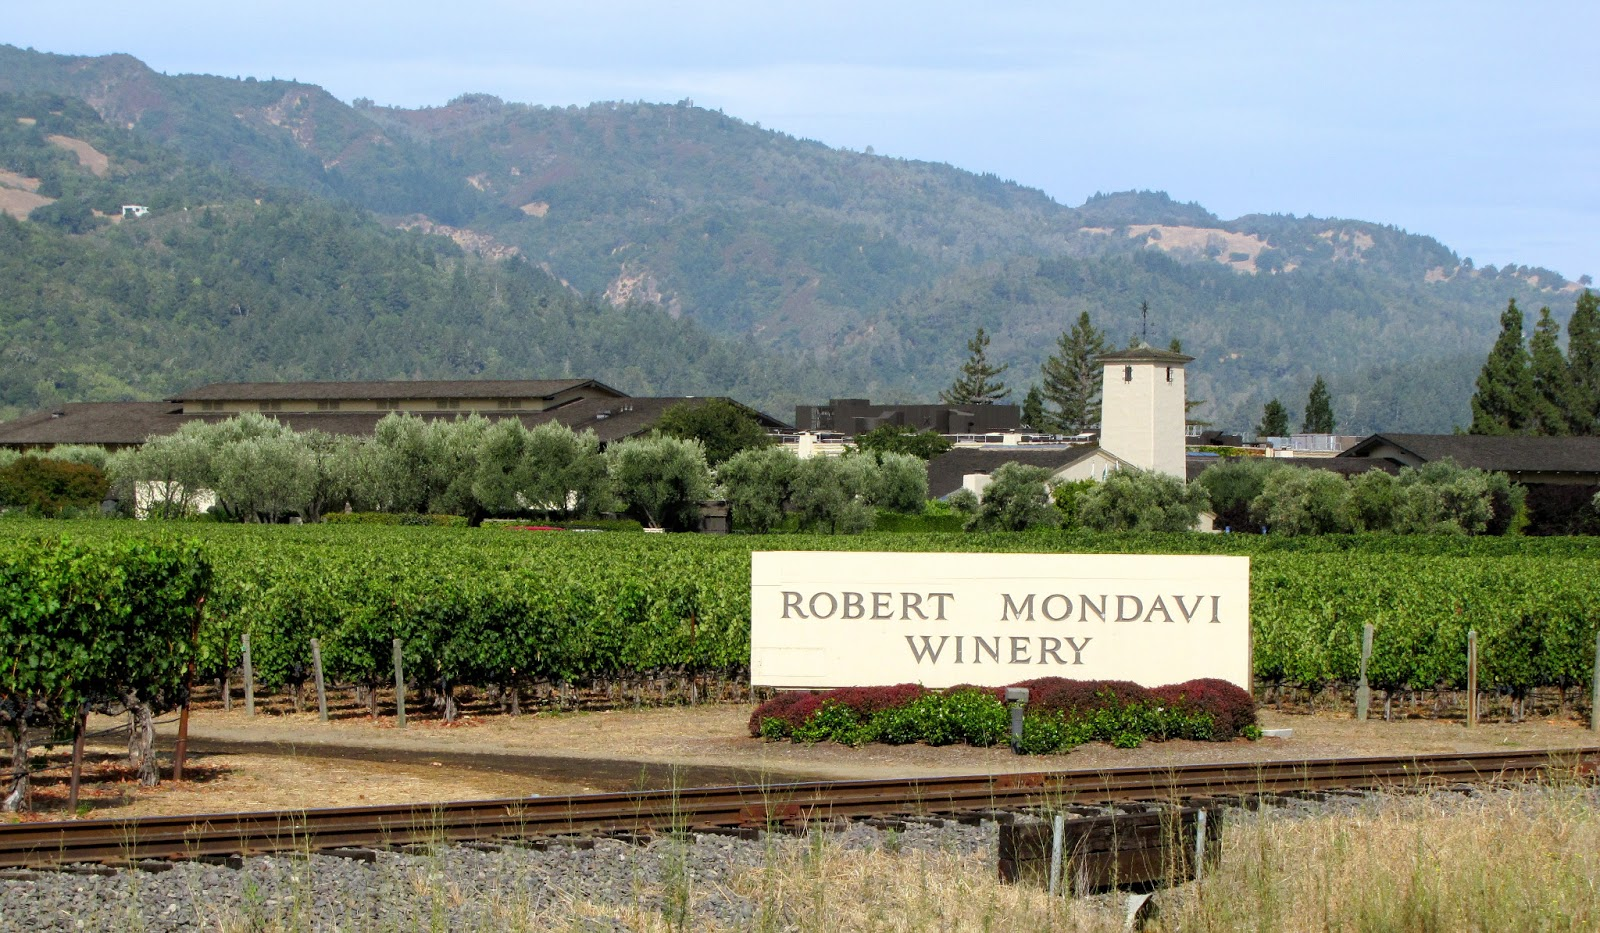 mondavi winery 8 robert mondavi winery reviews a free inside look at company reviews and salaries posted anonymously by employees.